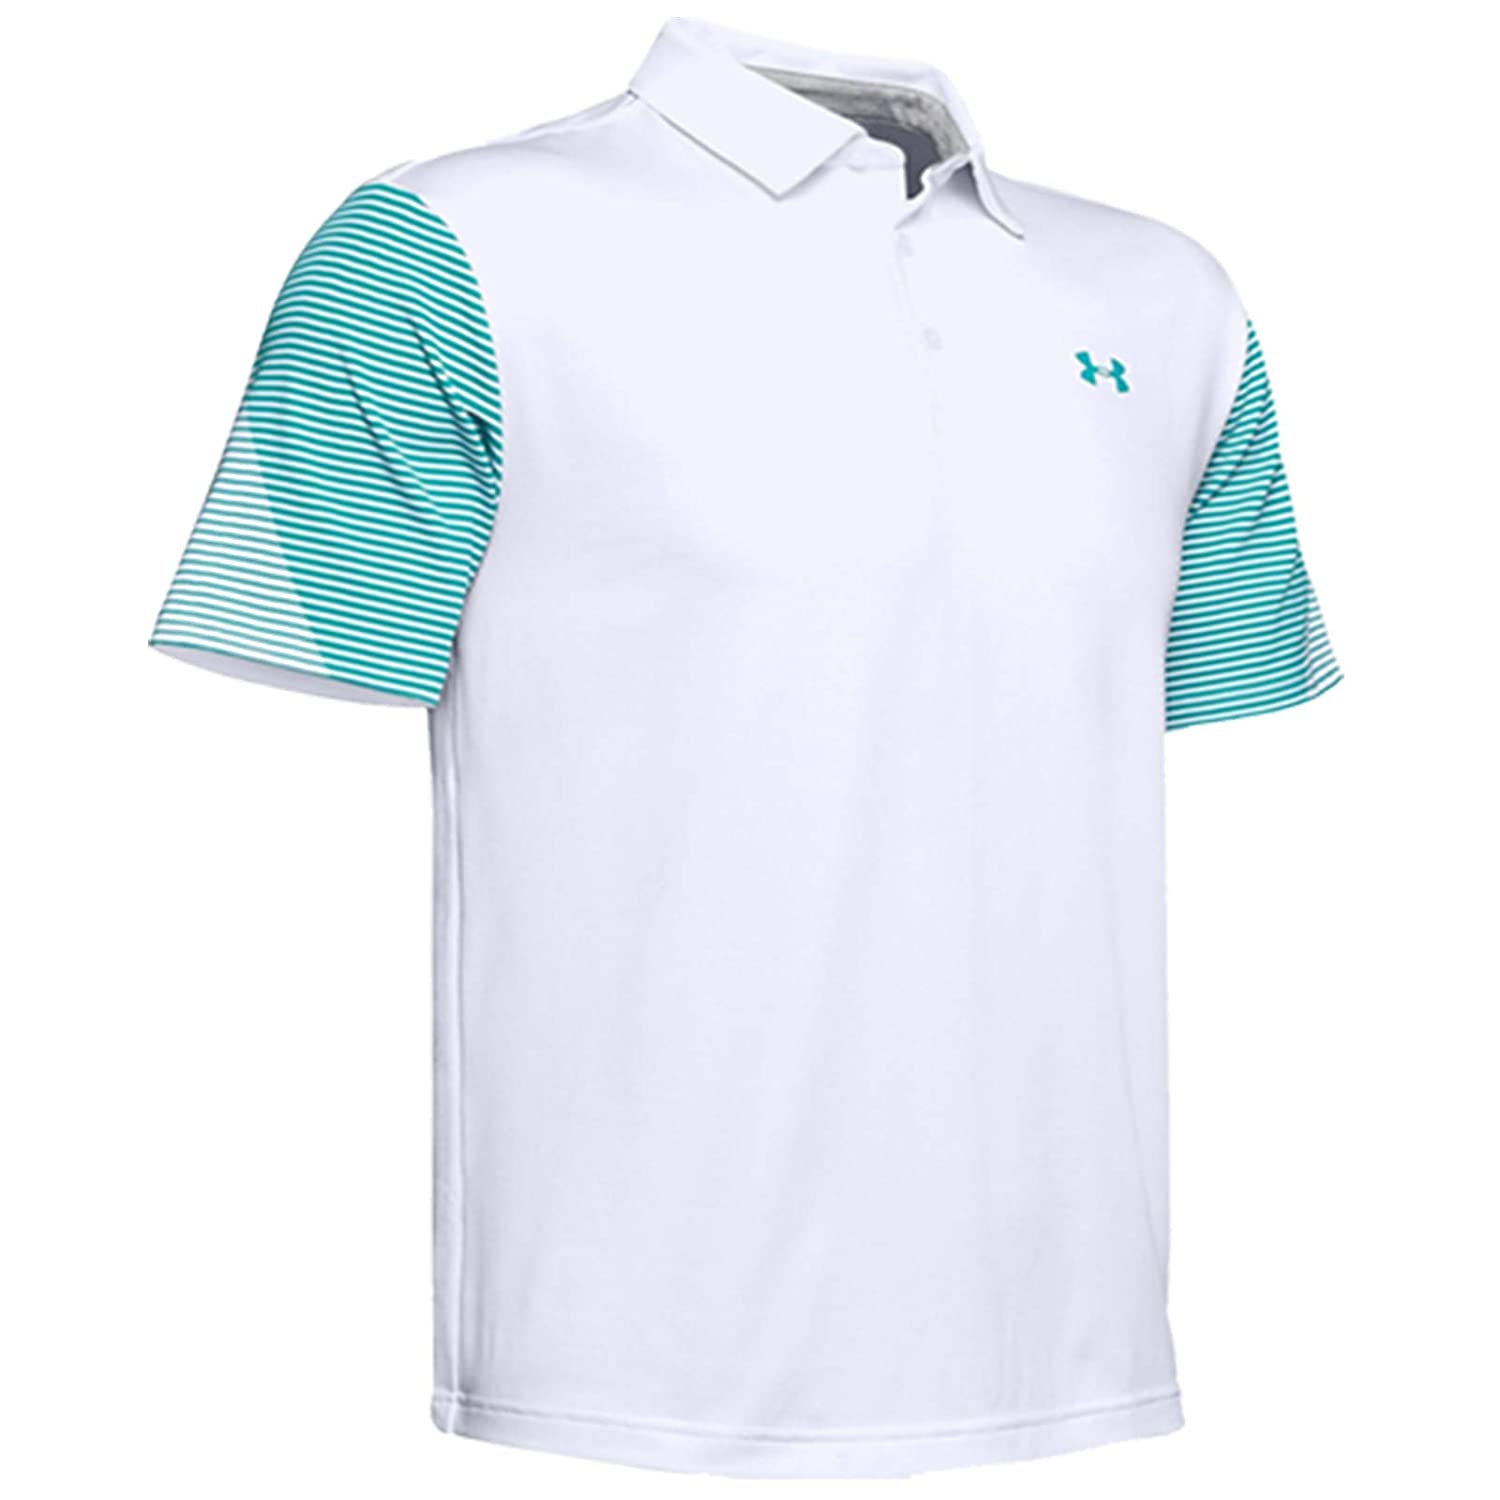 Under Armour Playoff 2.0 Polo, Hombre: Amazon.es: Deportes y aire ...